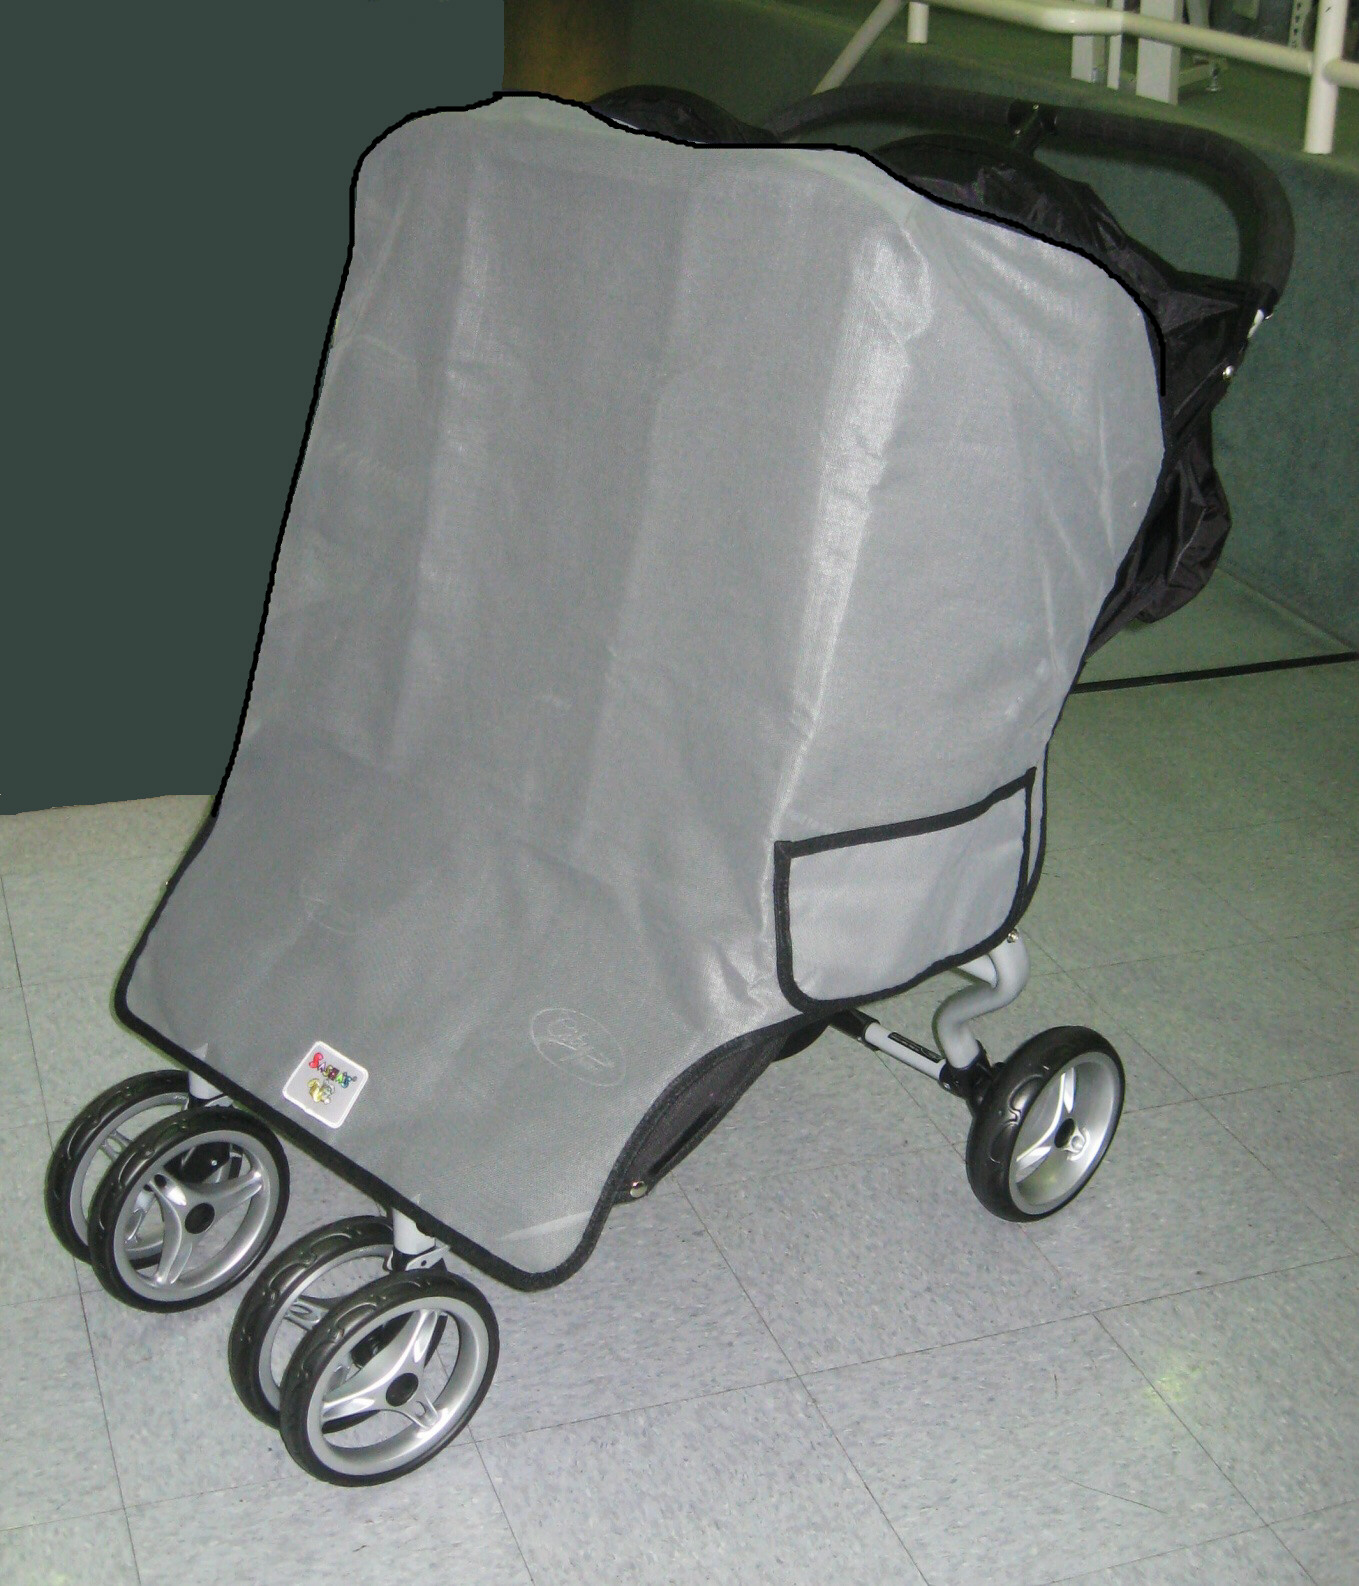 Baby Jogger Stroller Sun And Wind Covers From Sasha S 888 640 0917